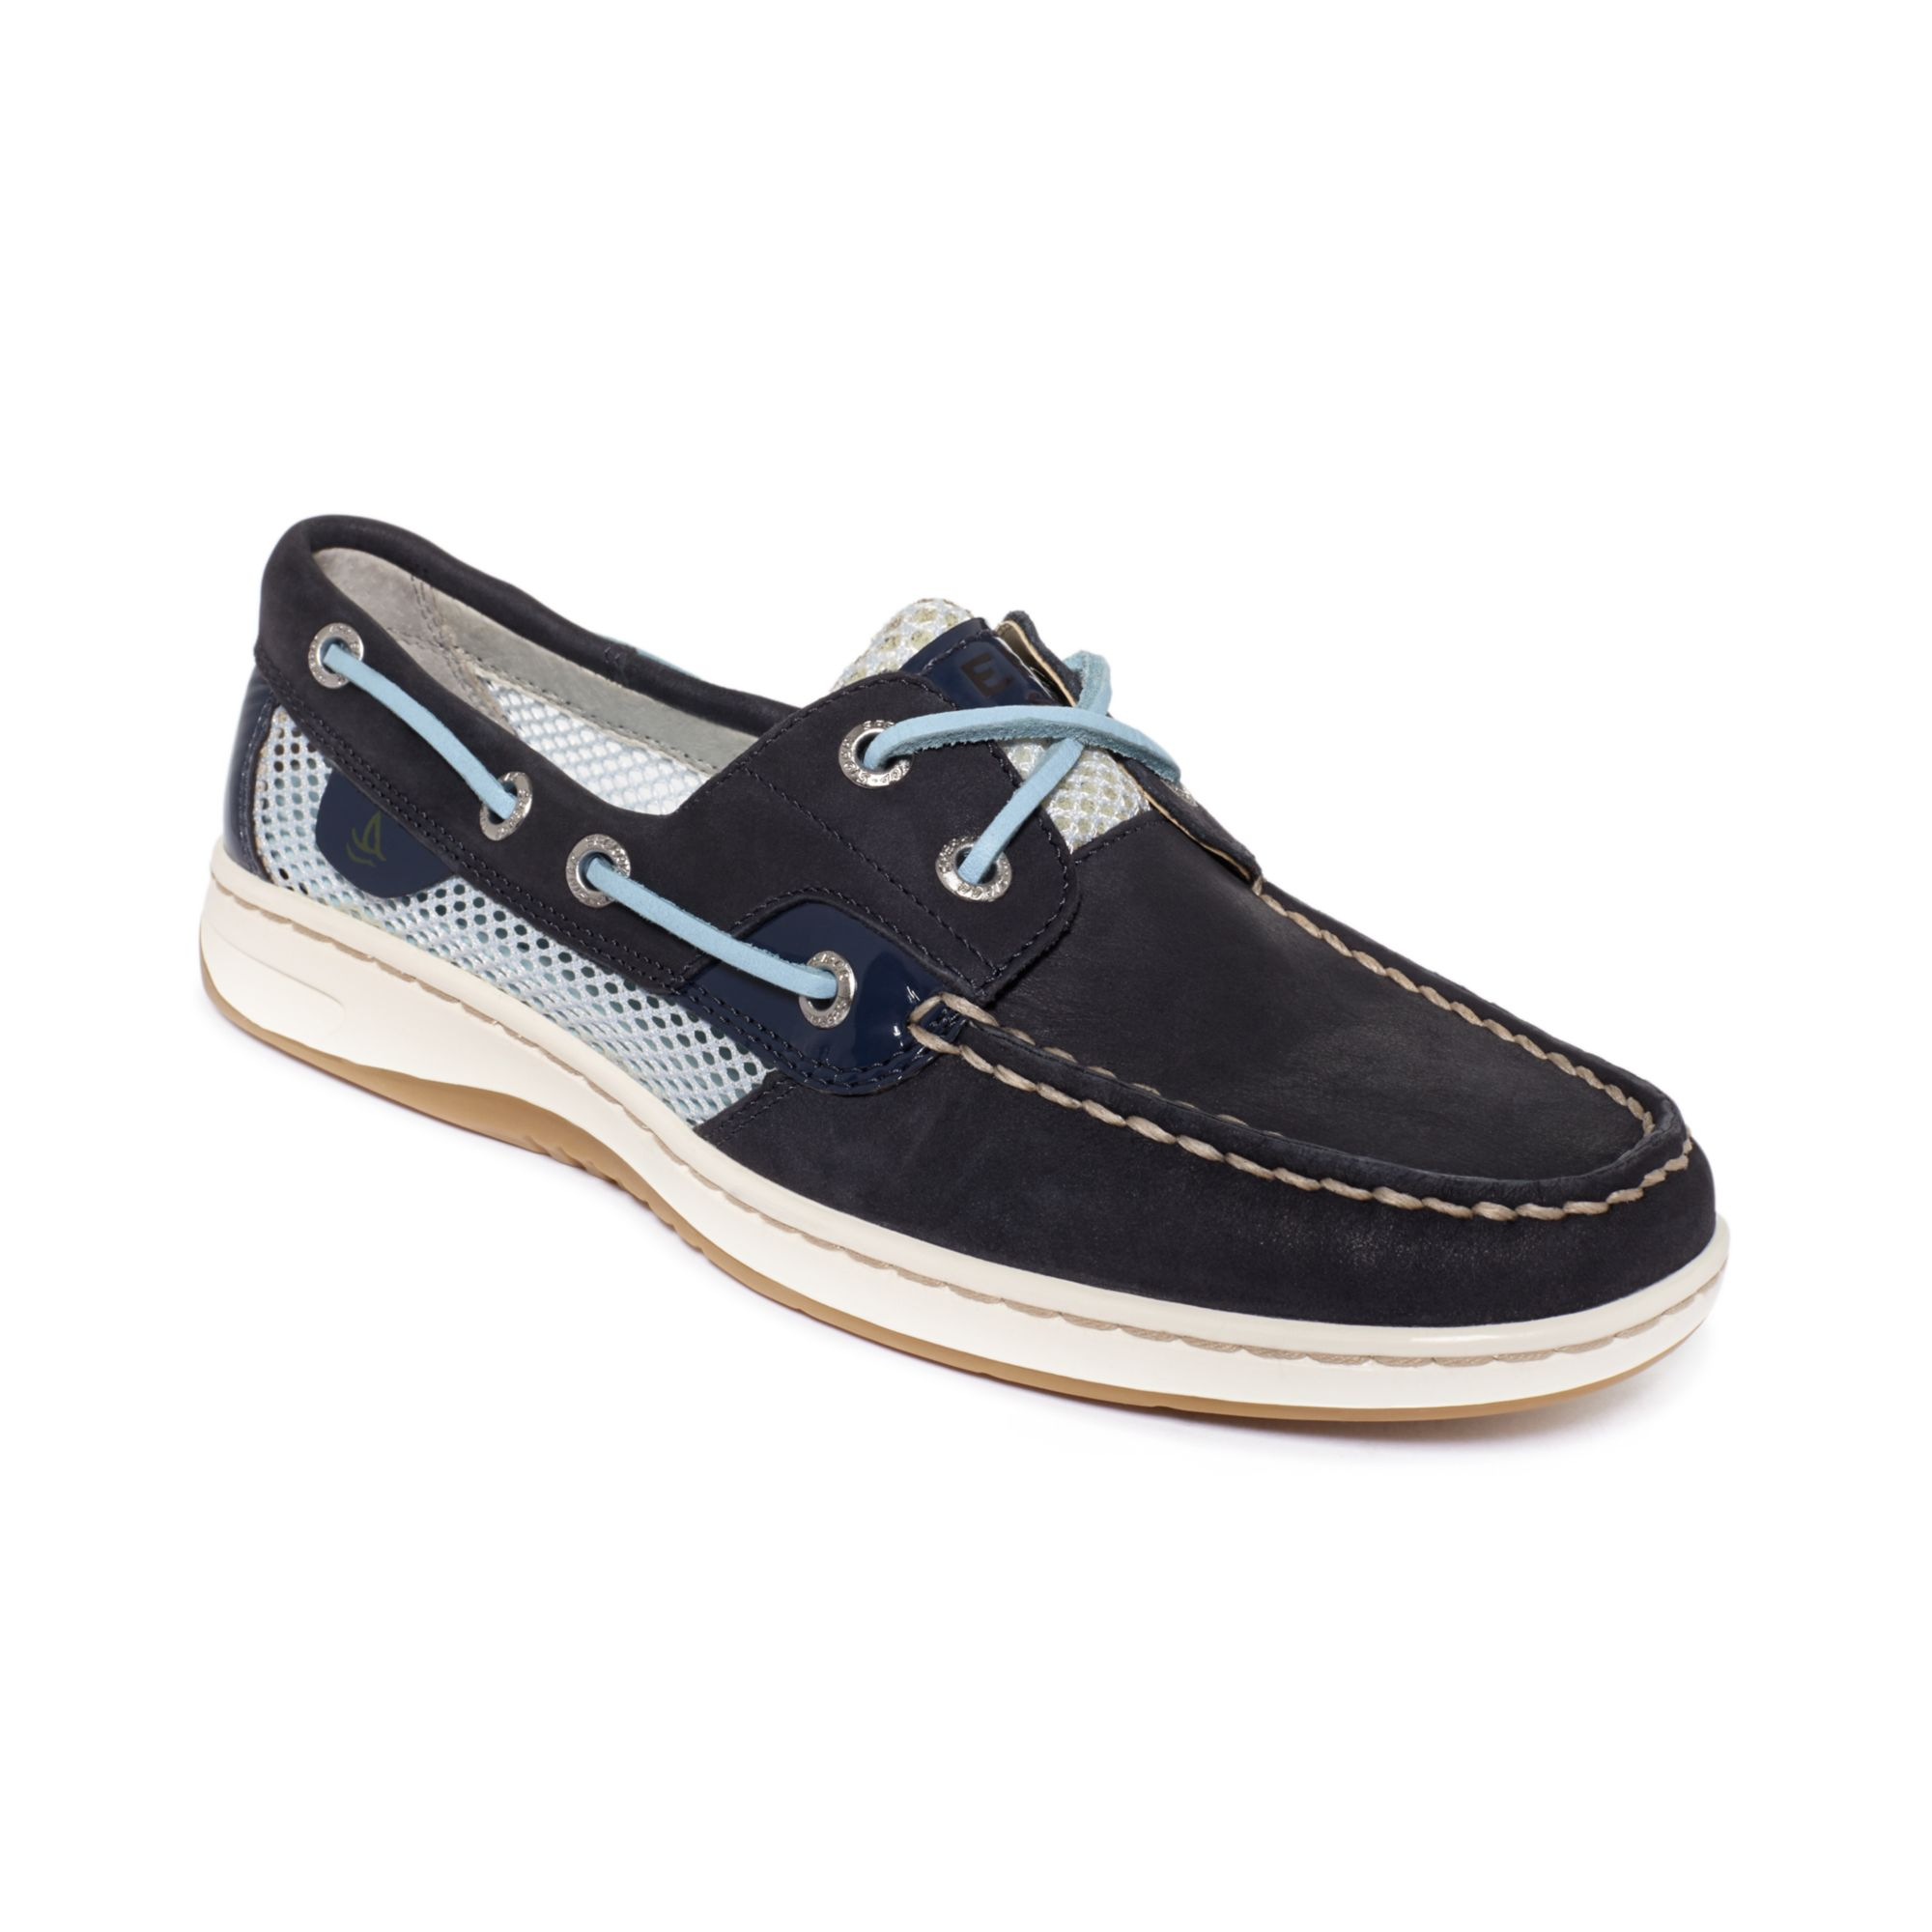 Cheap Sperry Bahama Shoes